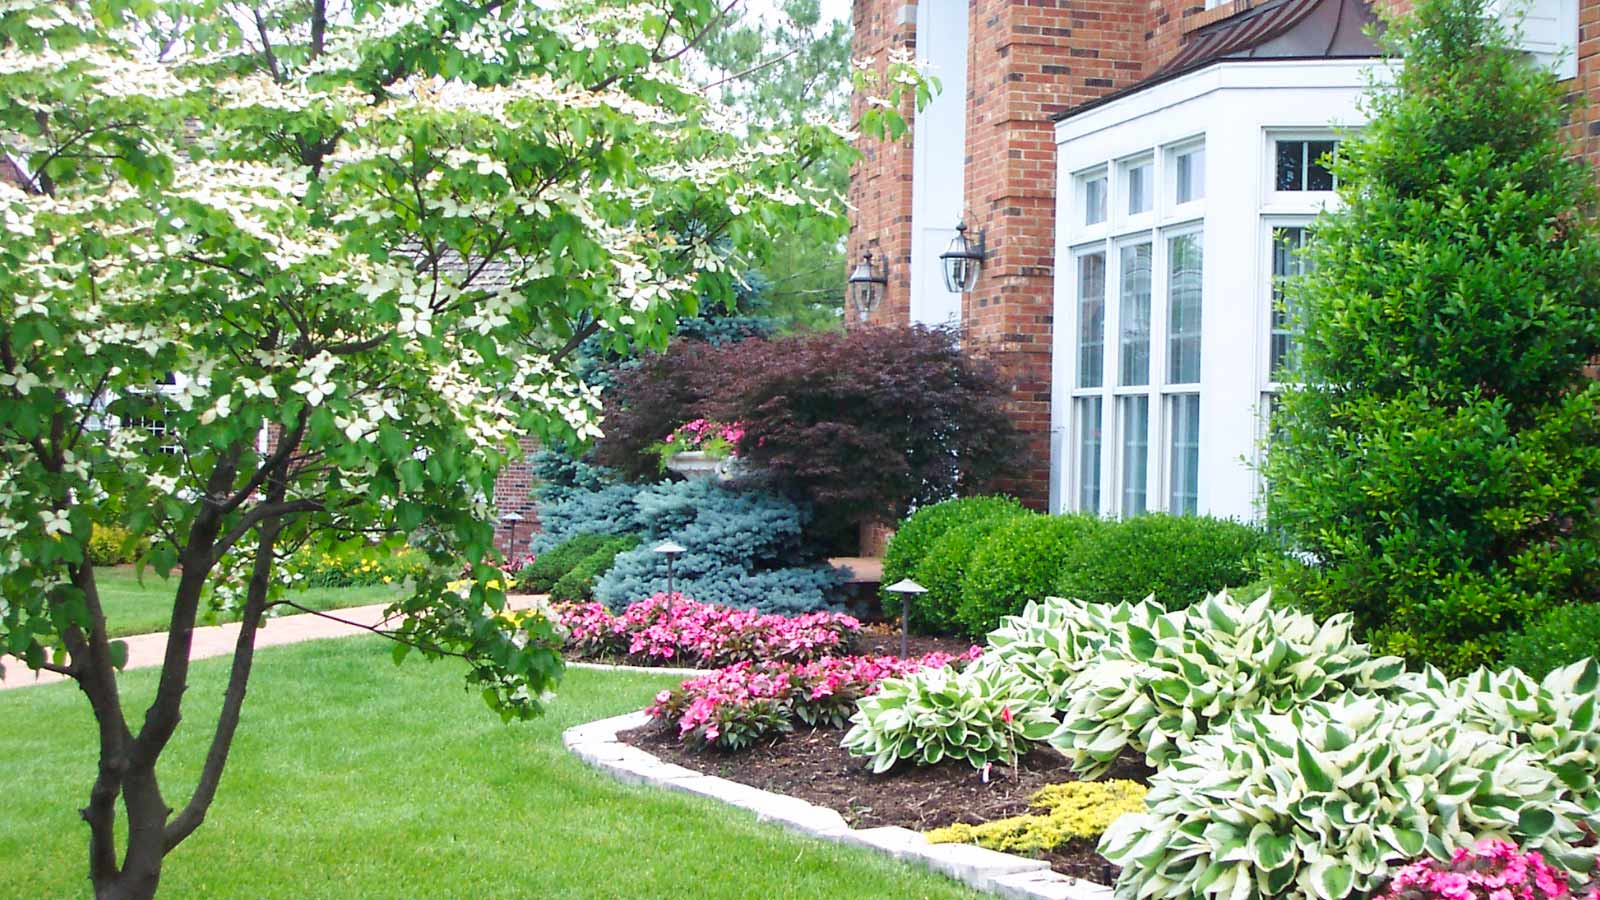 7 Easy Steps To Hire Professional Landscaping Services For